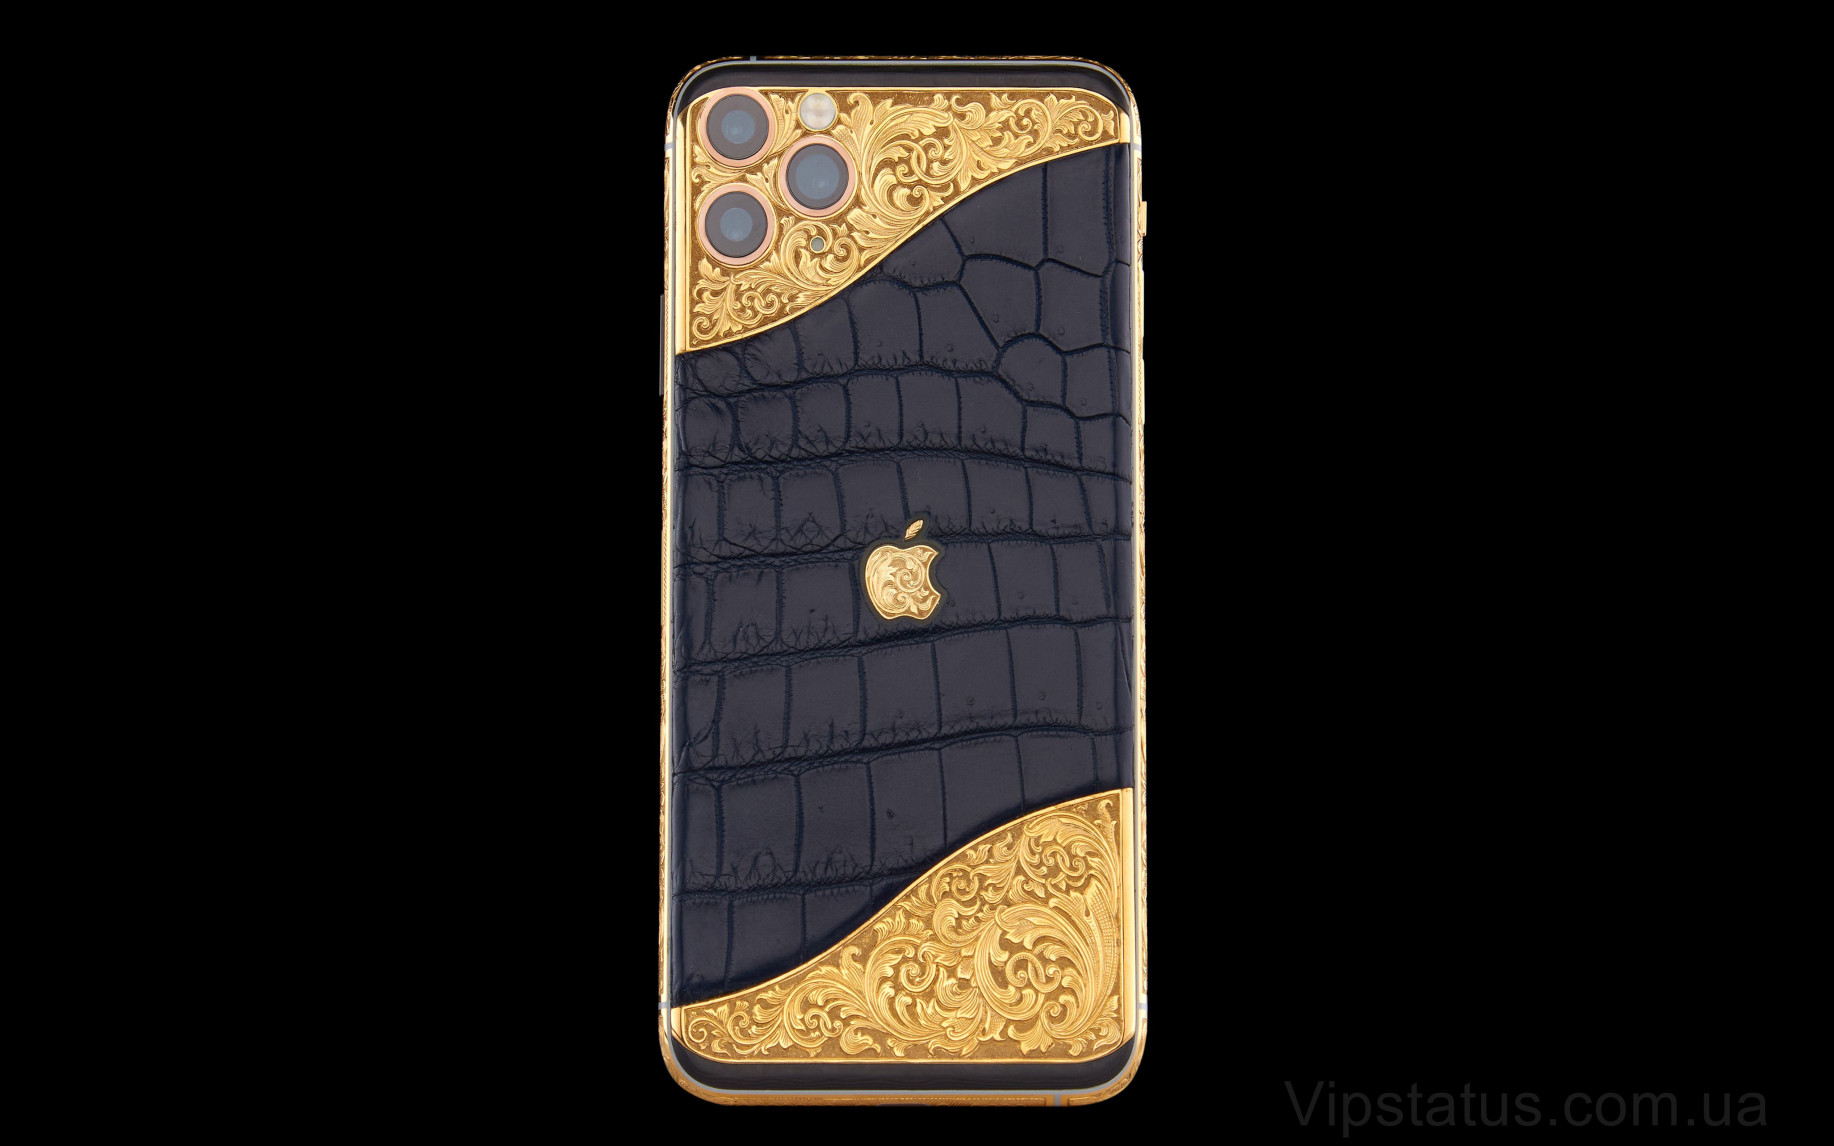 Элитный Gold Aristocrate IPHONE 11 PRO MAX 512 GB Gold Aristocrate IPHONE 11 PRO MAX 512 GB изображение 4